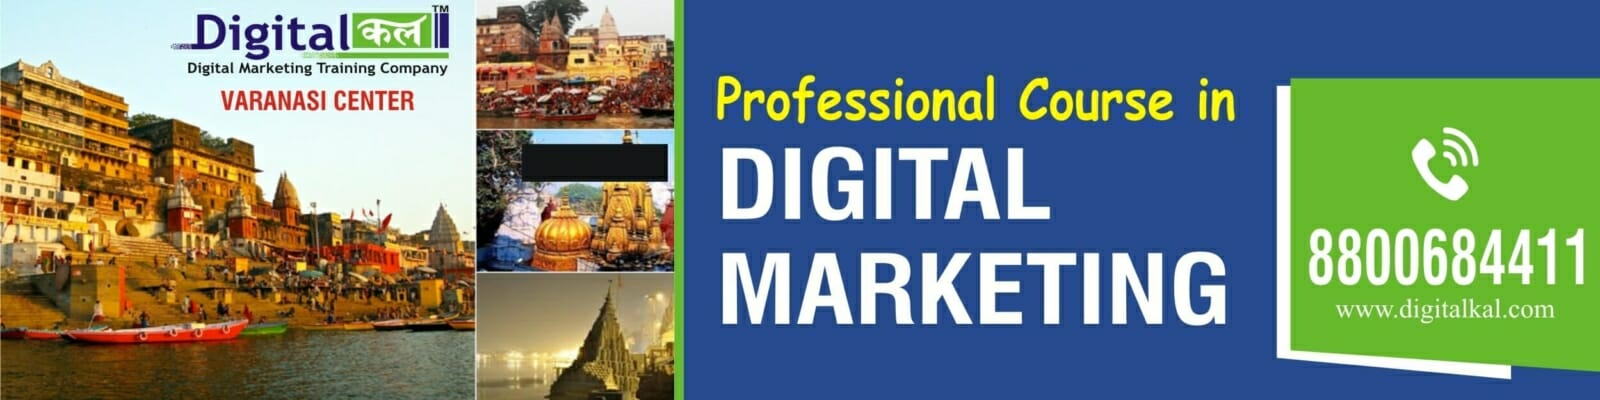 Digital Marketing Course Varanasi